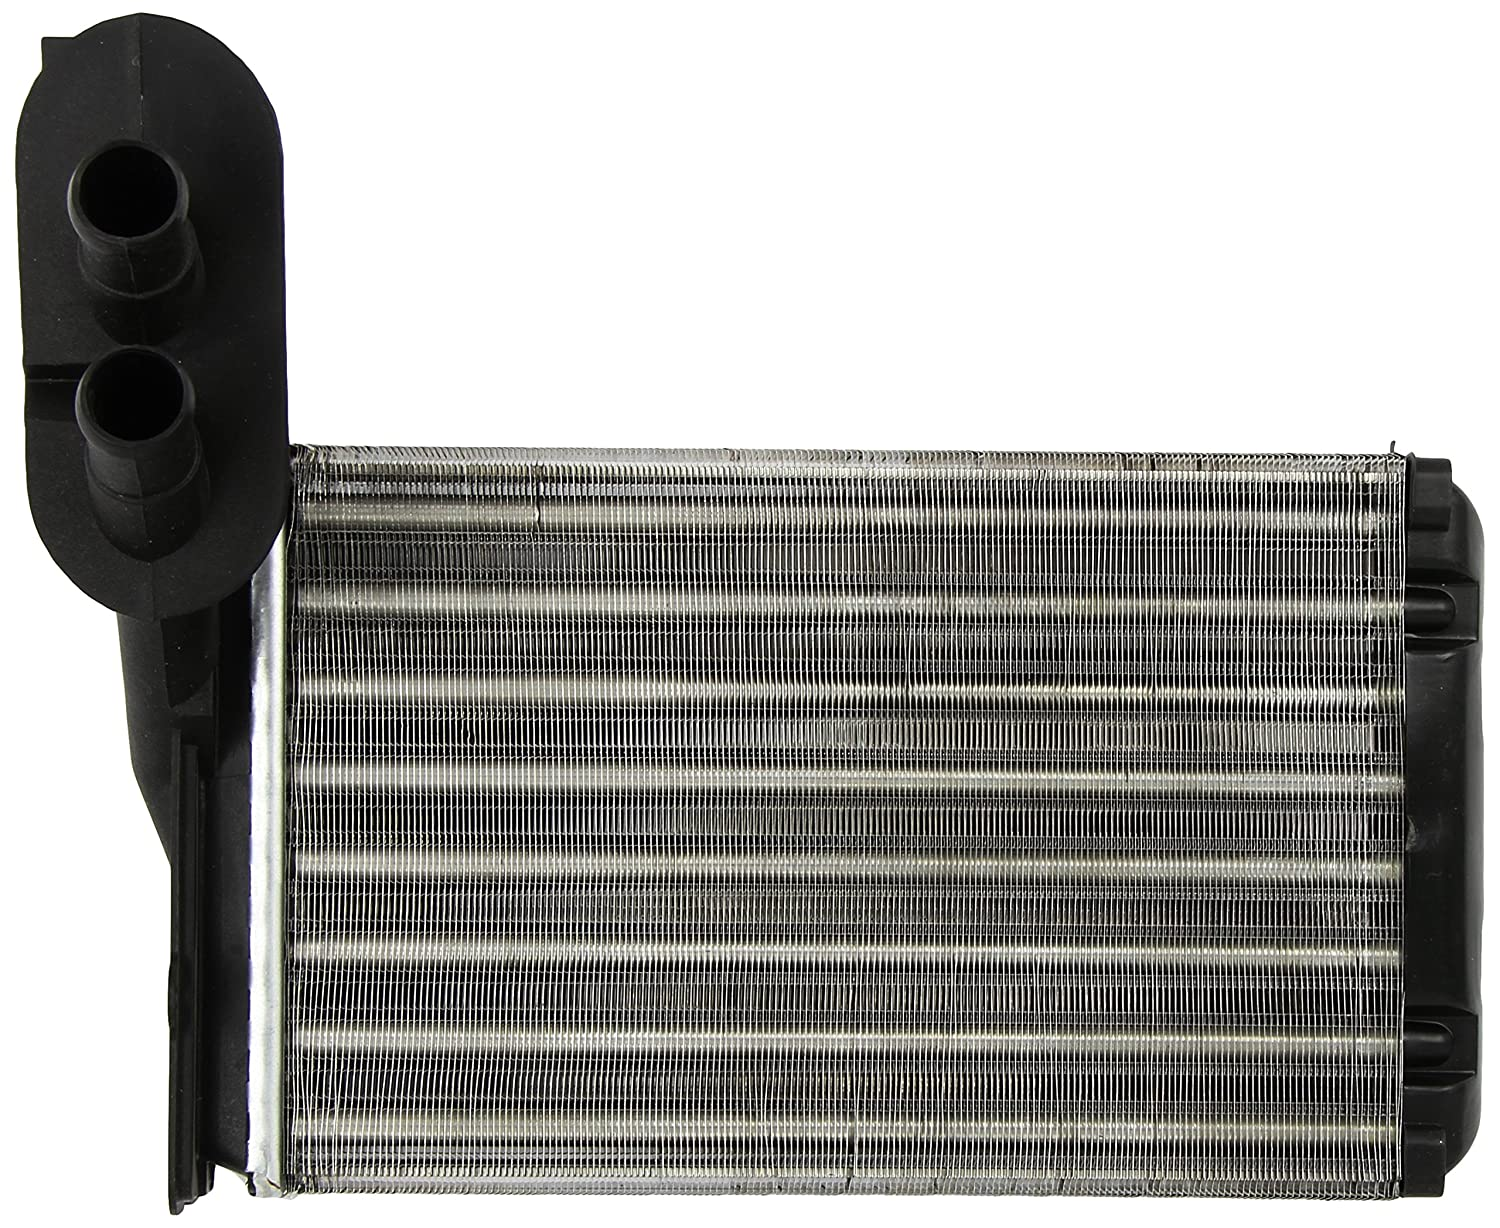 Nissens 73961 Heat Exchanger, interior heating